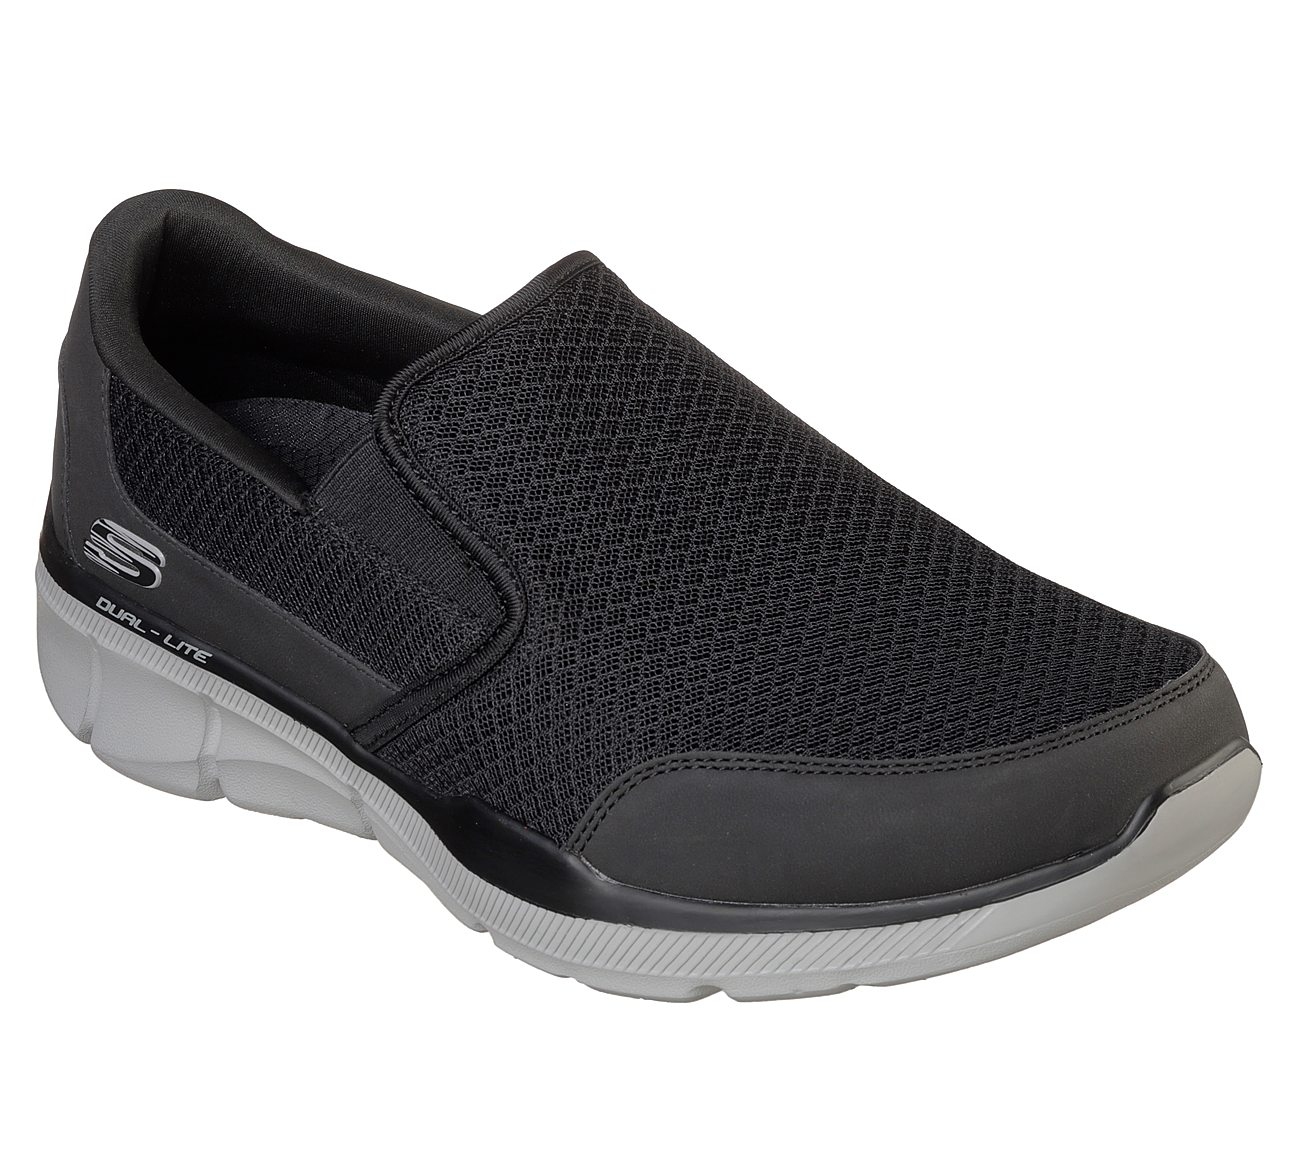 Buy SKECHERS Relaxed Fit: Equalizer 3.0 Bluegate Relaxed 2wff6